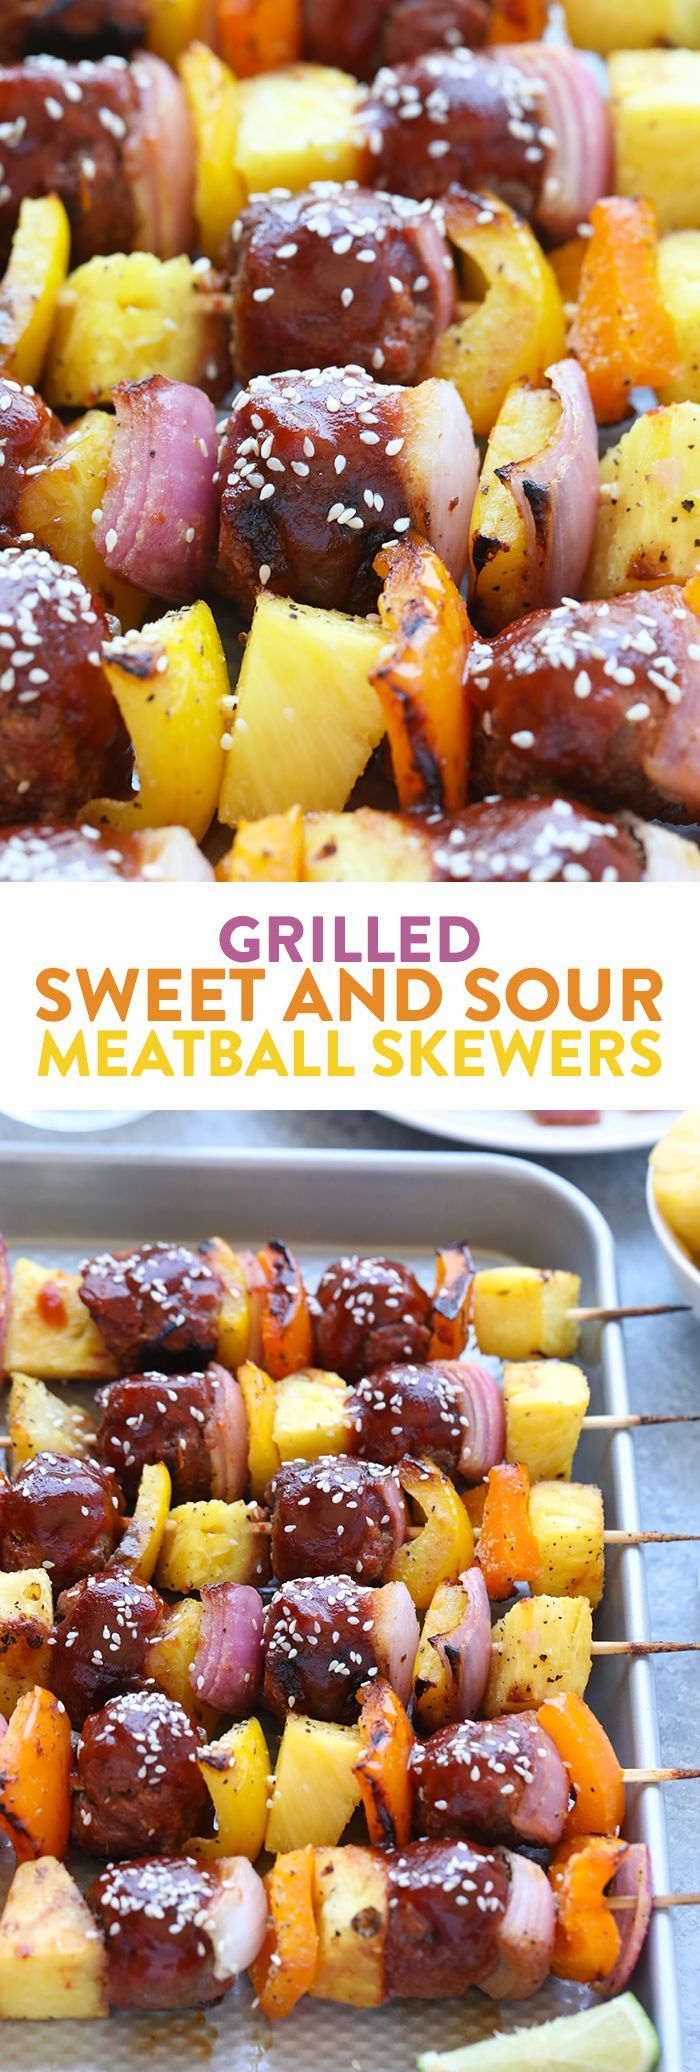 Make a healthy meal on a stick with these amazing Grilled Sweet and Sour Meatball Skewers. The meatballs are made with lean ground beef, grated yellow squash, and ginger with a fantastic healthier sweet and sour marinade.